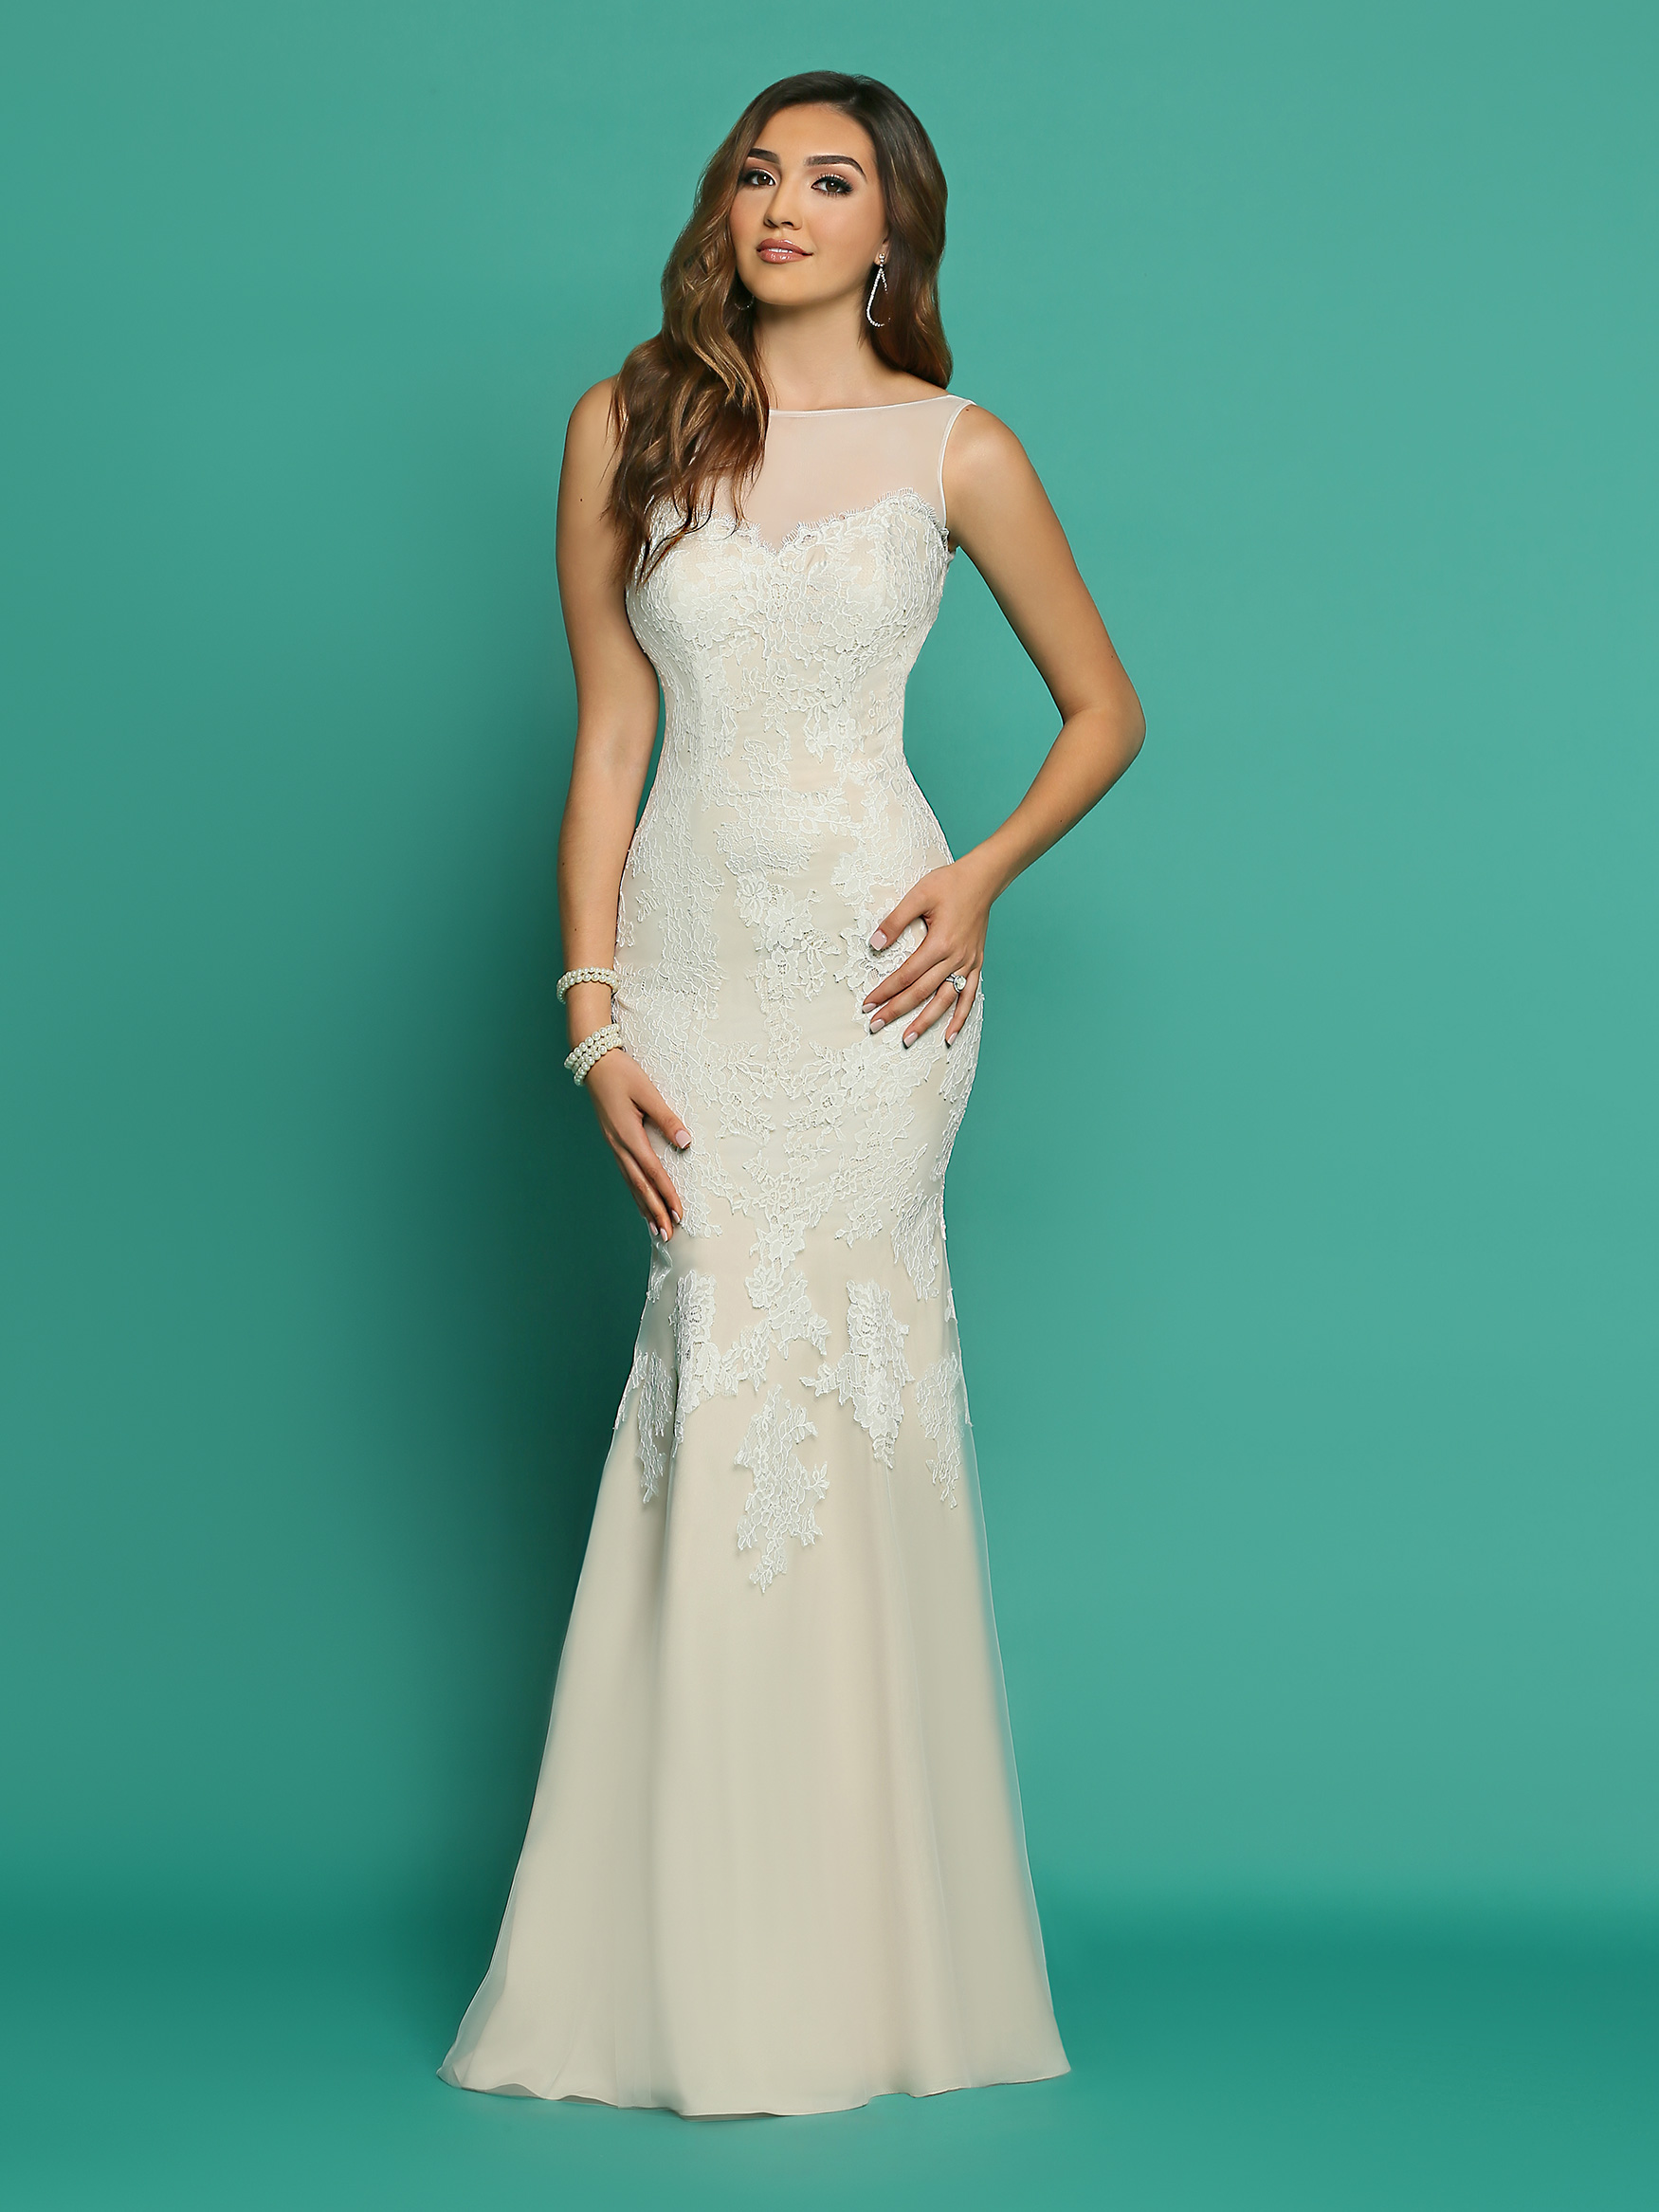 casual wedding dresses image showing front view of style #f7054 ... sljhsmt